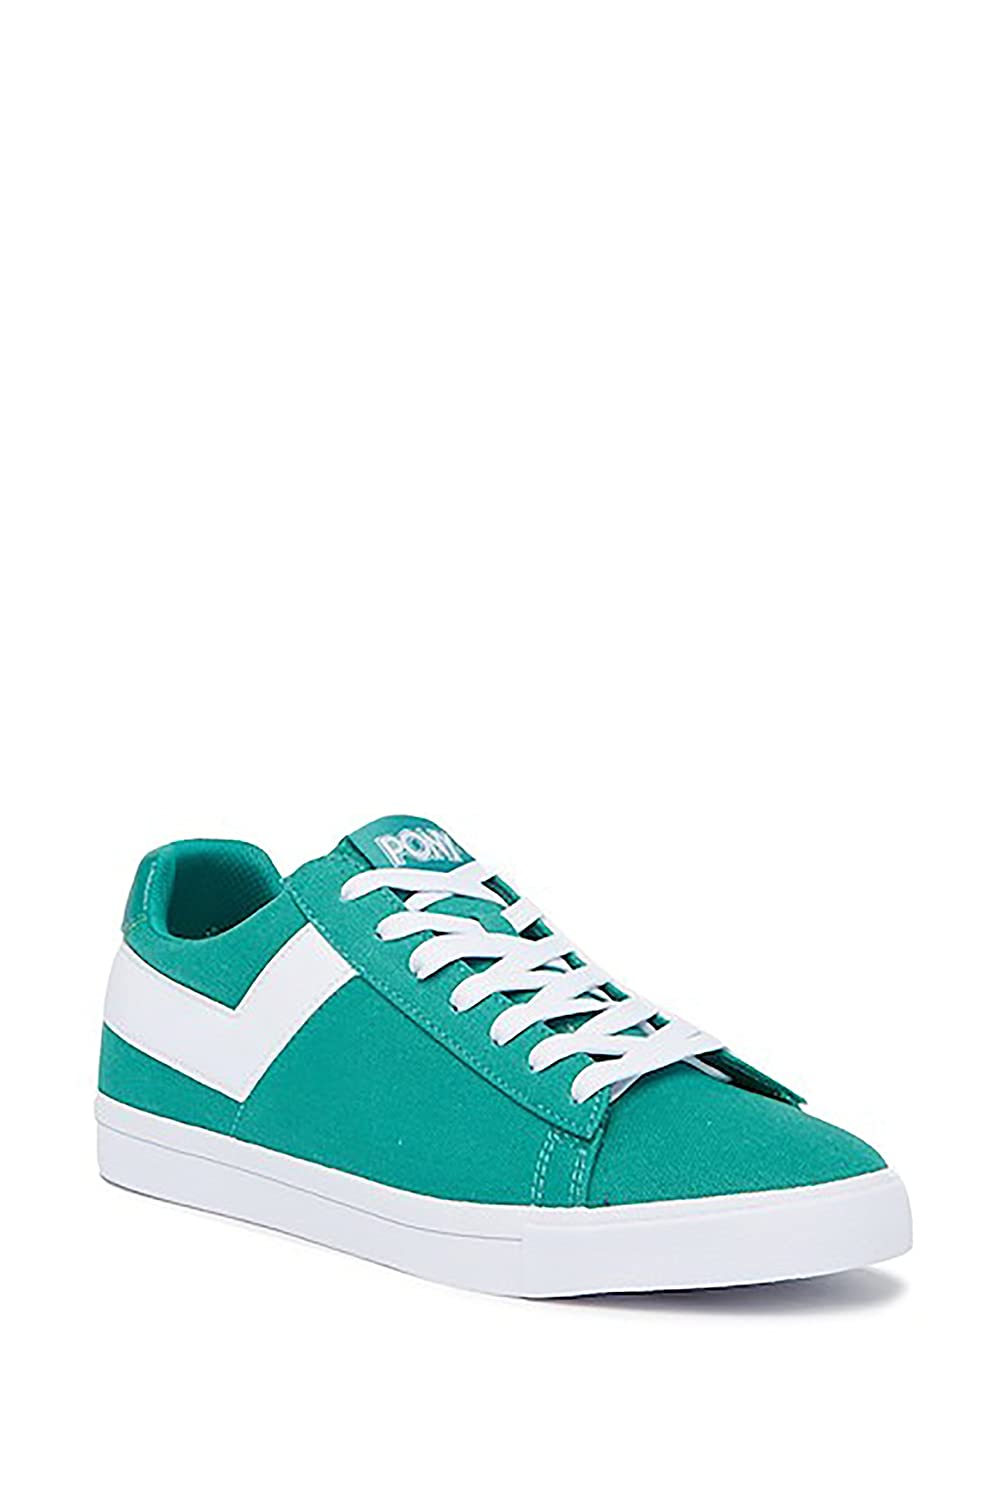 Pony Women's Top-Star-Lo-Core-Canvas Sneakers Shoes B07D1T3ZJW 6 B(M) US|Aqua White